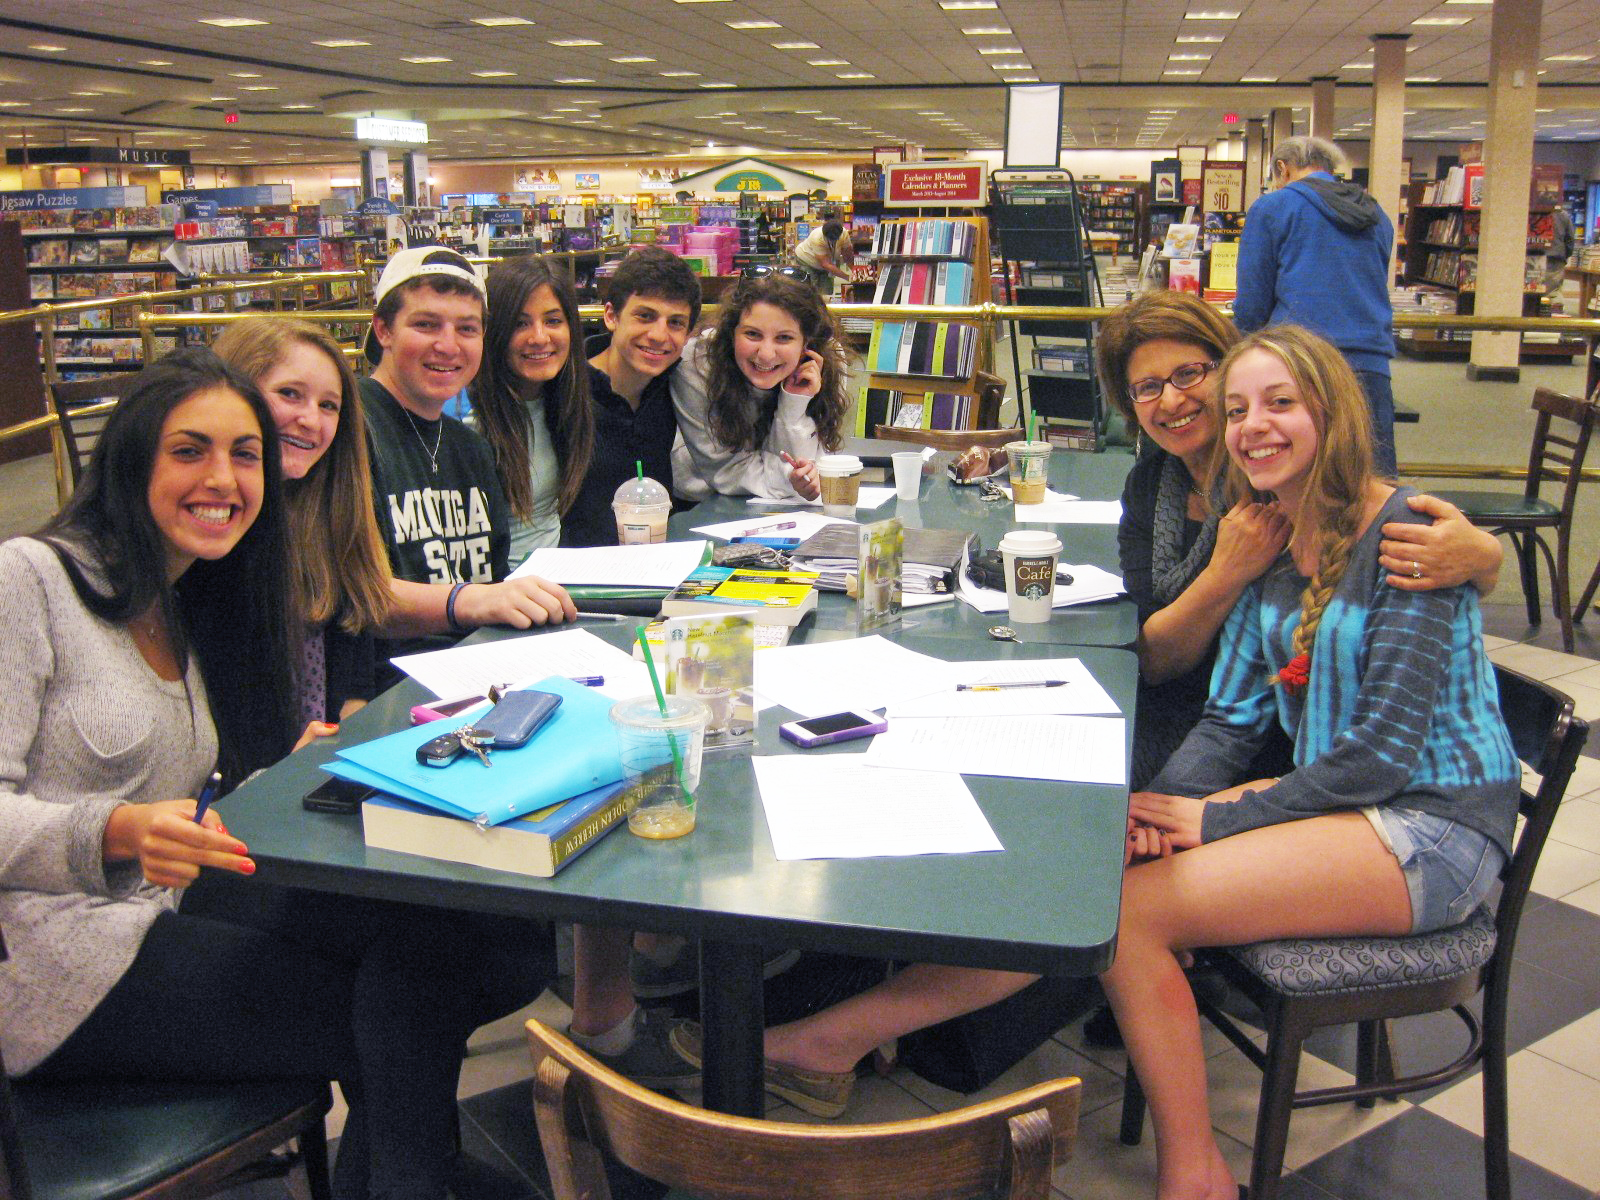 Bringing College-Level Jewish Education Directly to the Southeast Michigan Jewish Community: A Collaboration between Eastern Michigan University Jewish Studies and Temple Israel, West Bloomfield, Michigan